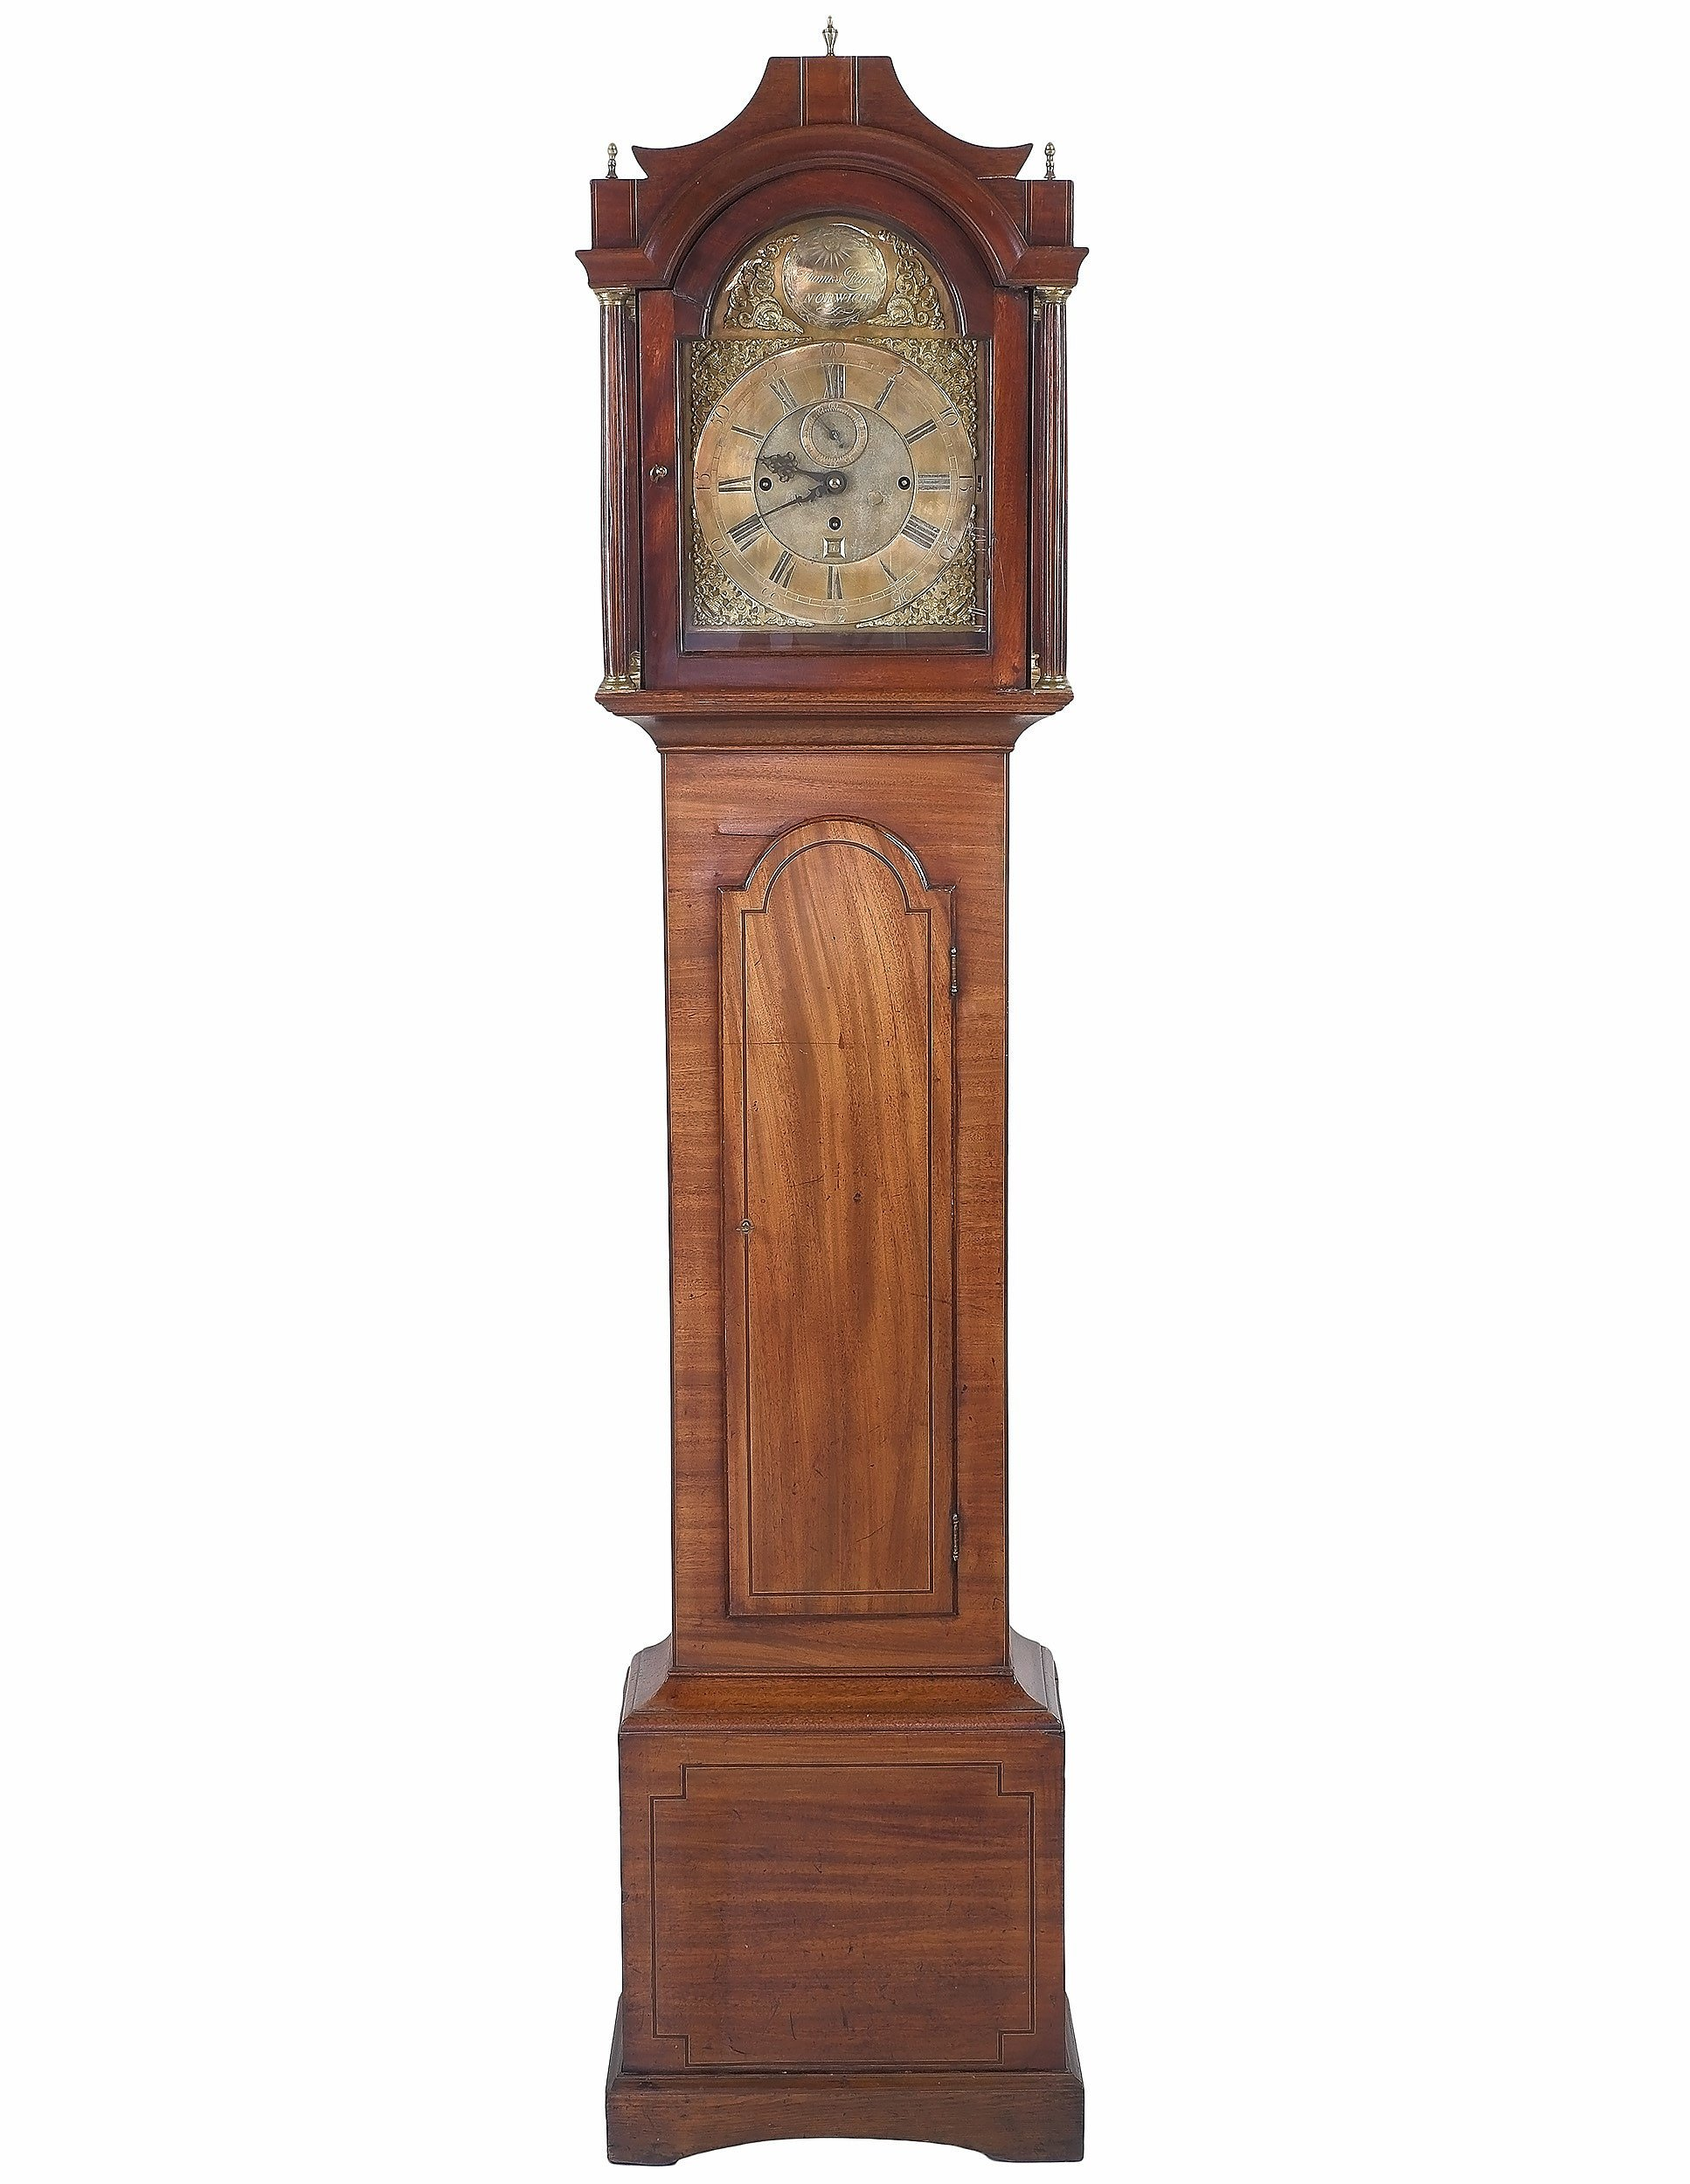 'Fine George III Mahogany Cased Musical Longcase Clock Striking on Eight Bells with Subsidiary Seconds and Calendar Aperture by Thomas Page Norwich Circa 1760'